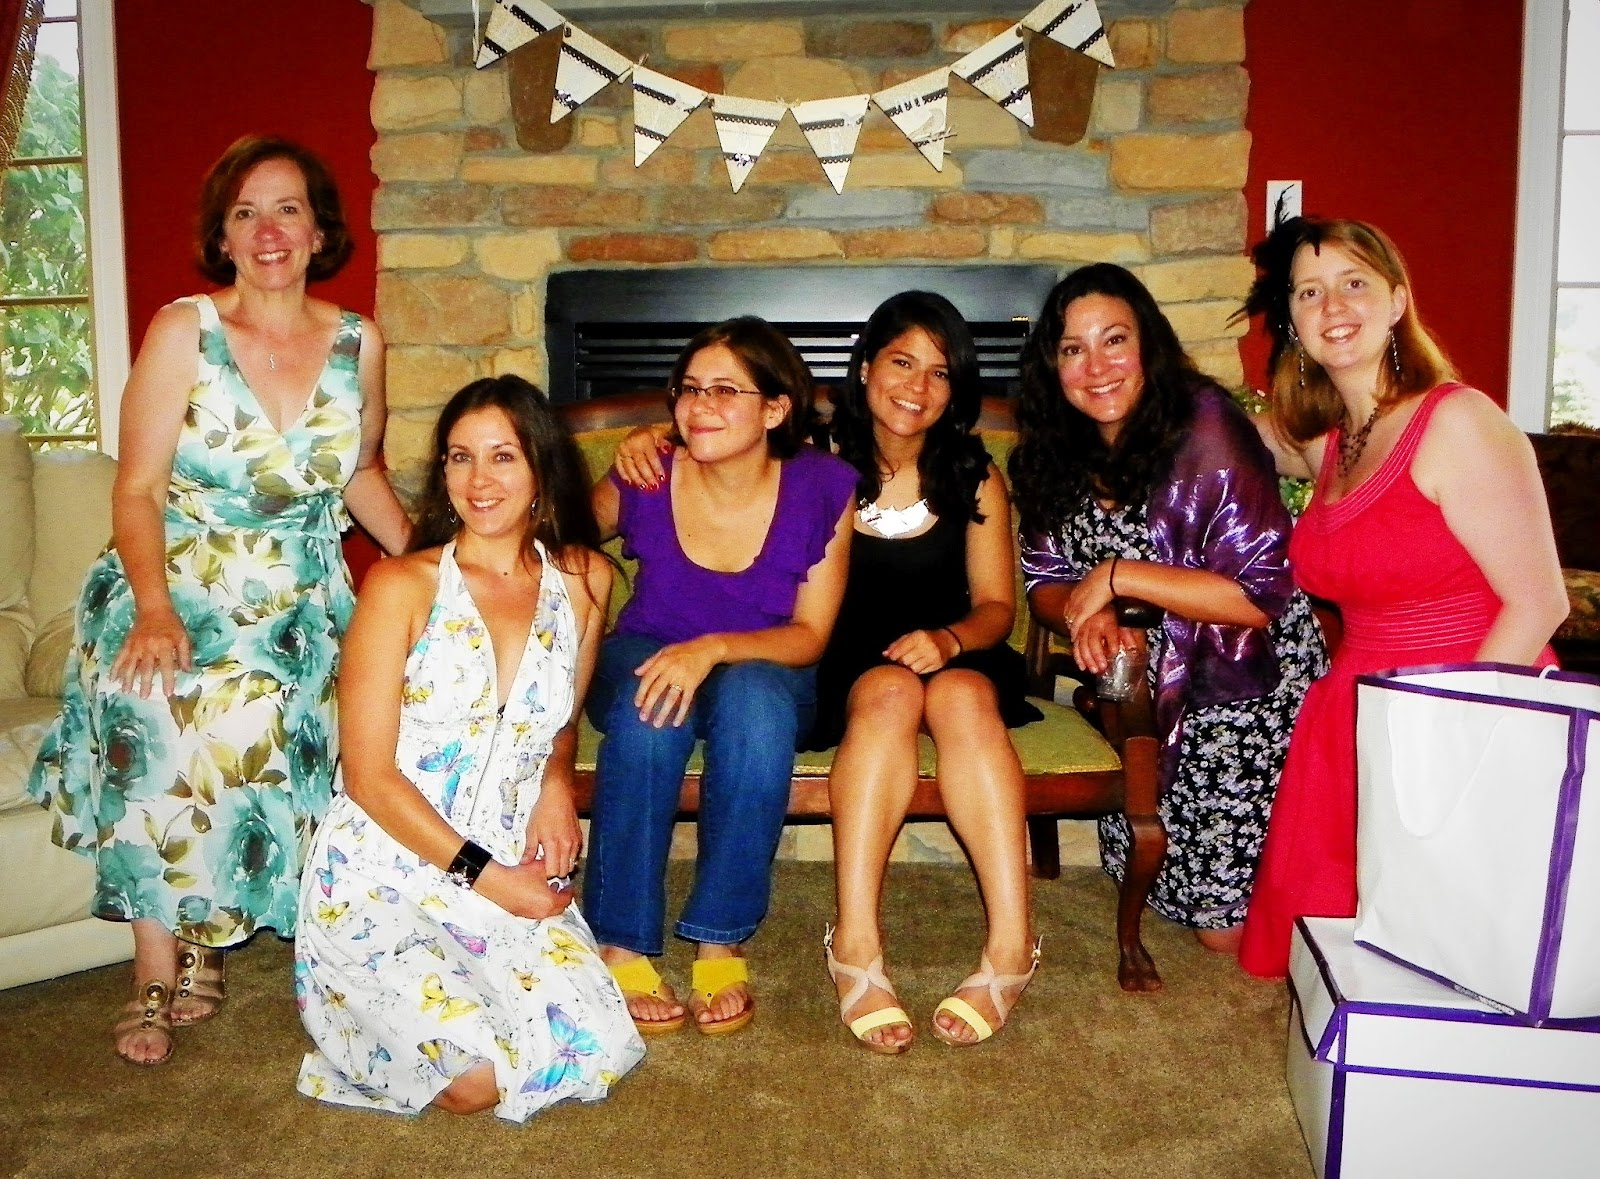 The Bride To Be Is 3rd From Left In Purple I M On Far Right Rest Are Other Bridesmaids Maid Of Honor Black Matron At